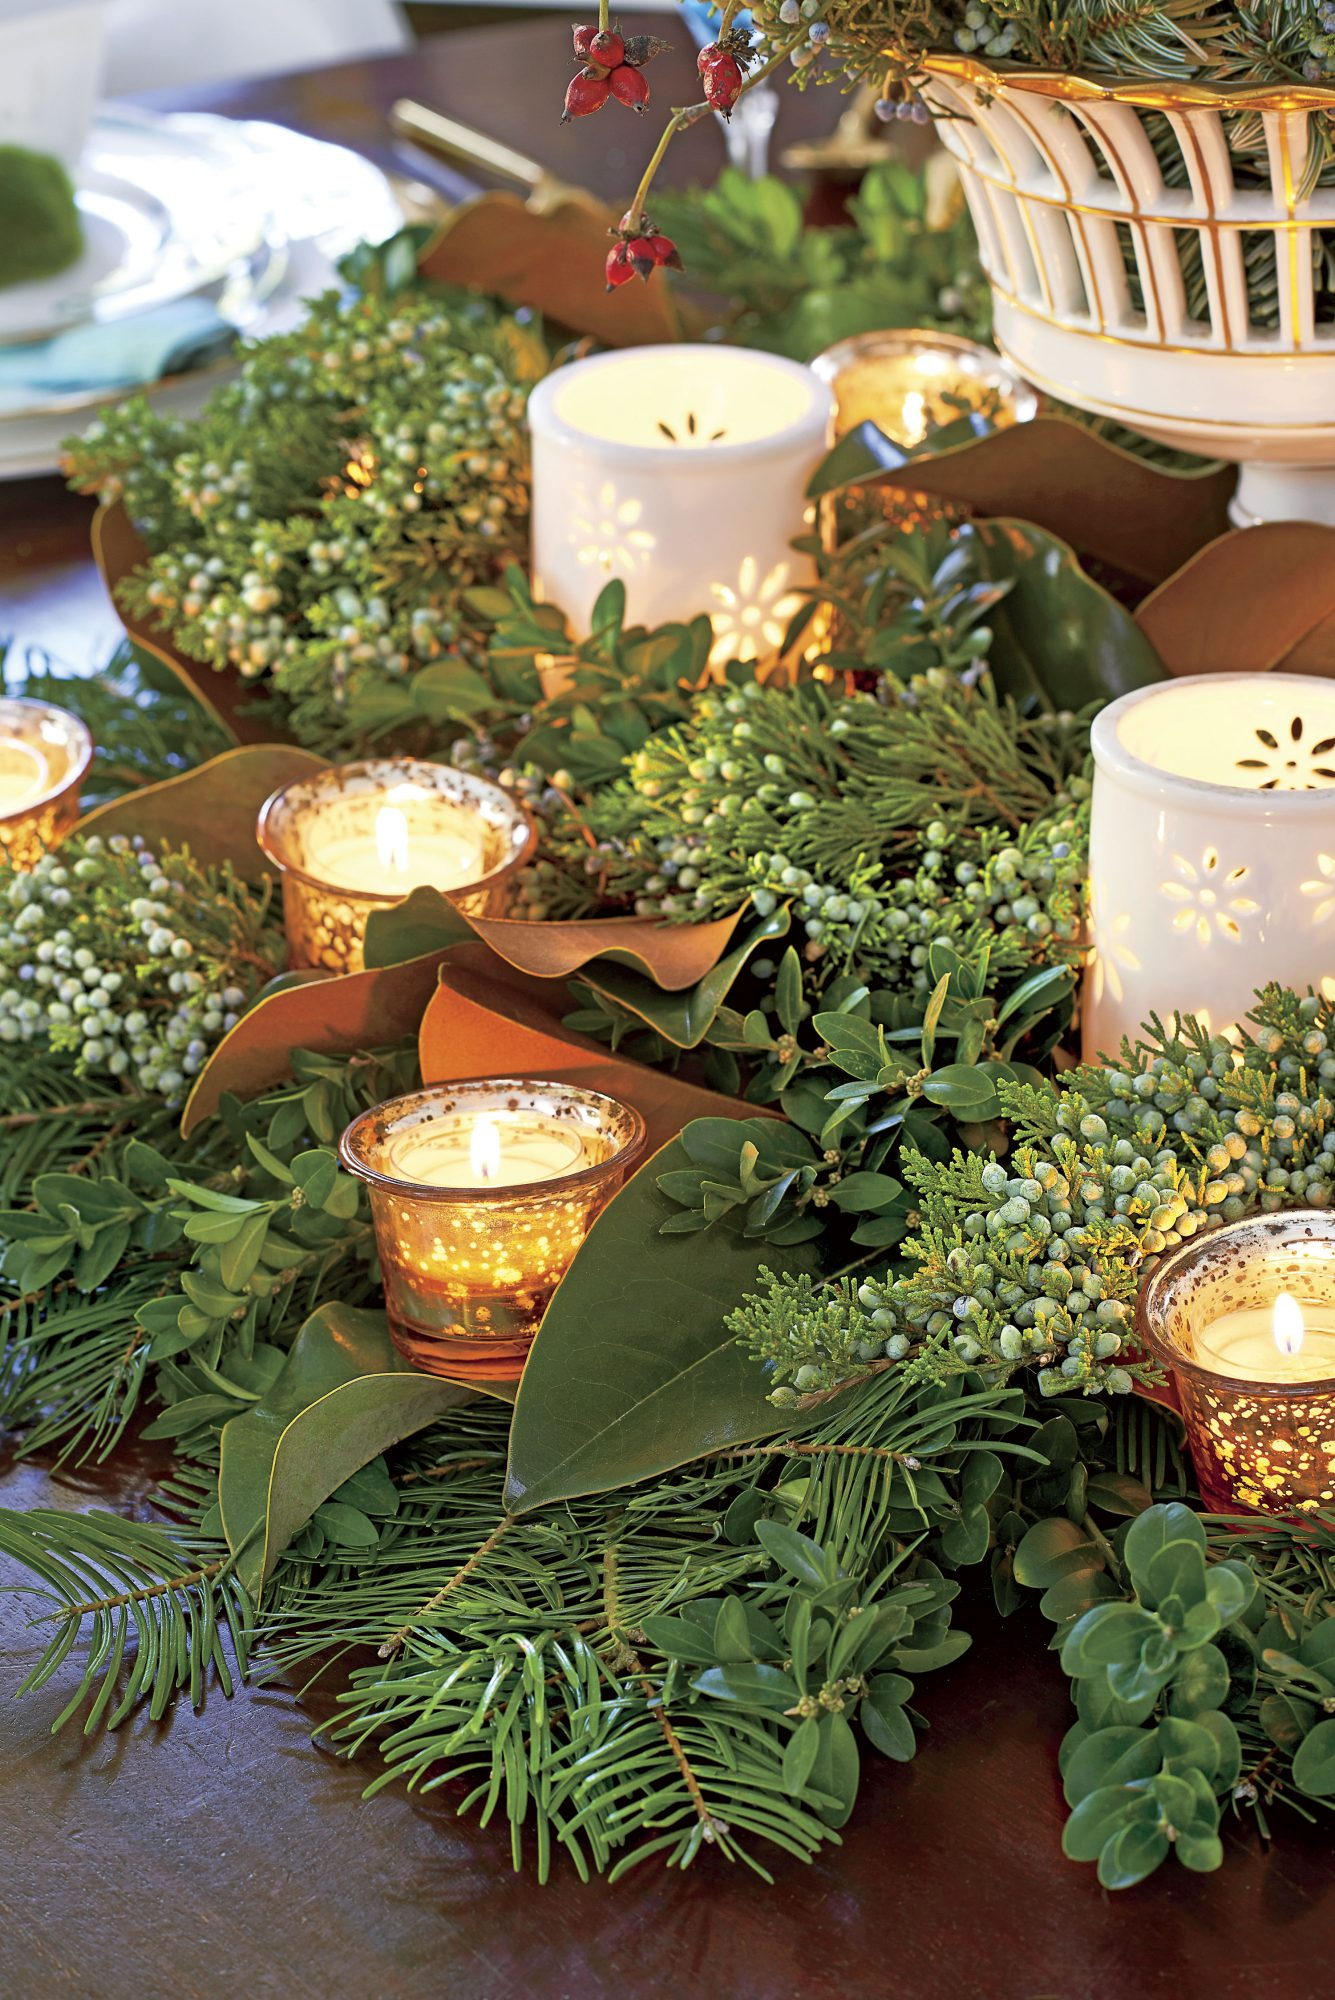 Christmas Greenery Centerpiece with Votive Candles